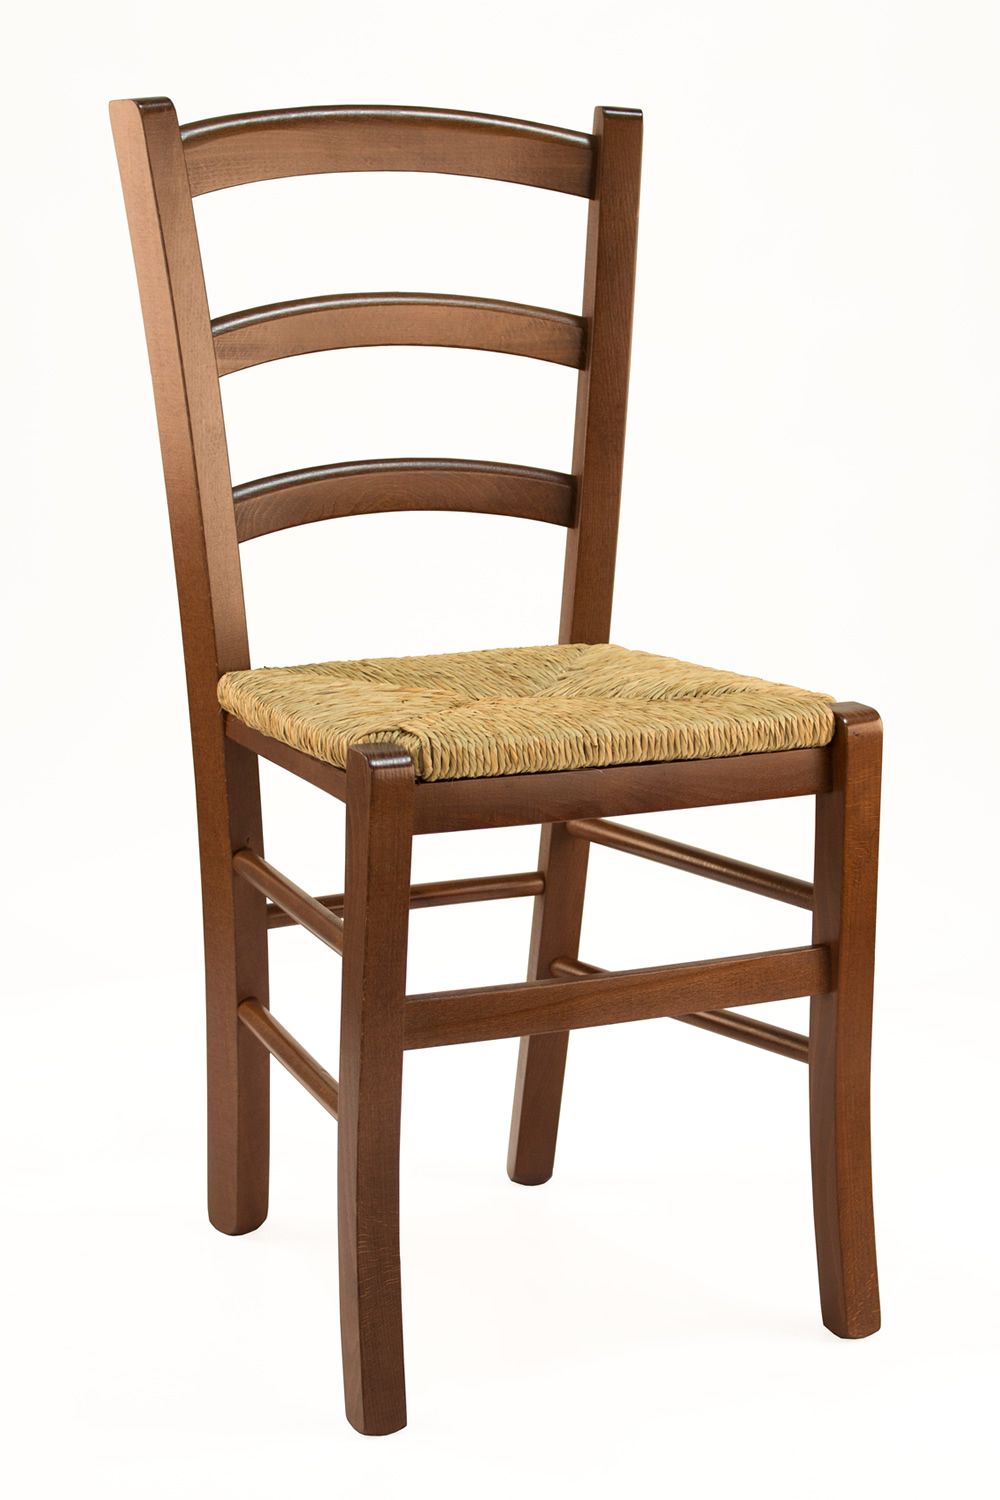 110 for bars and restaurants wooden chair for bar and for Sedie bar usate